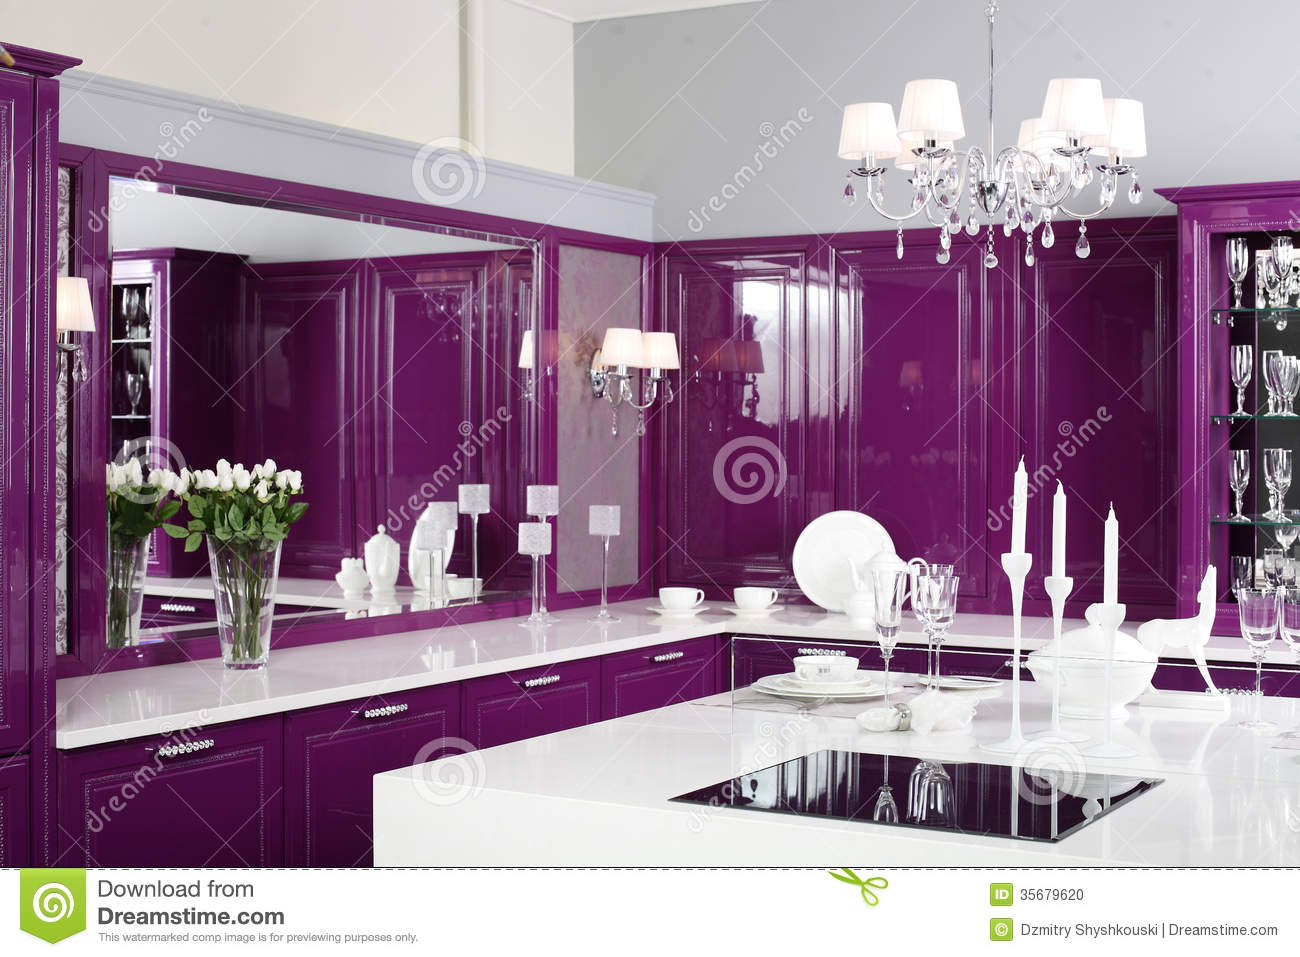 purple furniture. Modern Purple Kitchen With Stylish Furniture. House, Design. Furniture